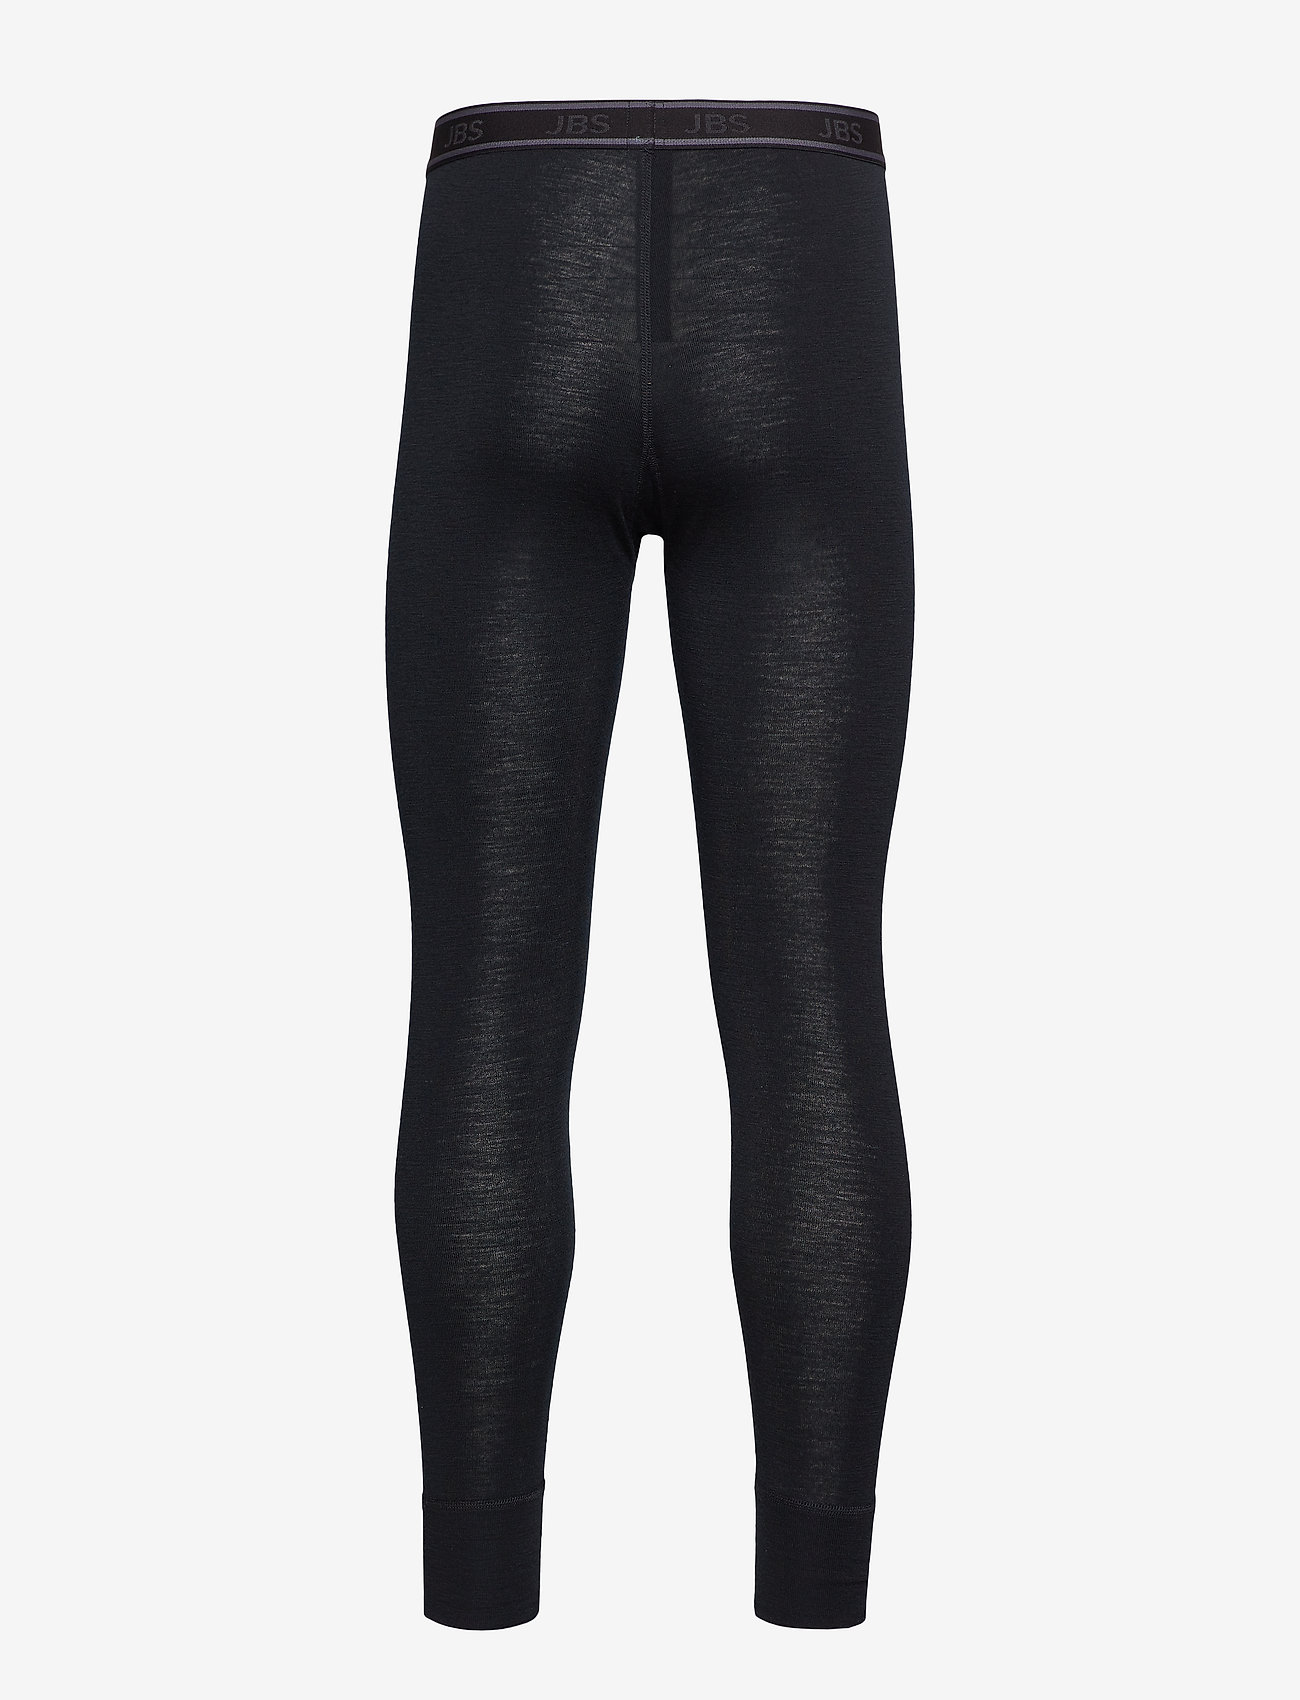 JBS - JBS, long johns - long johns - black - 1